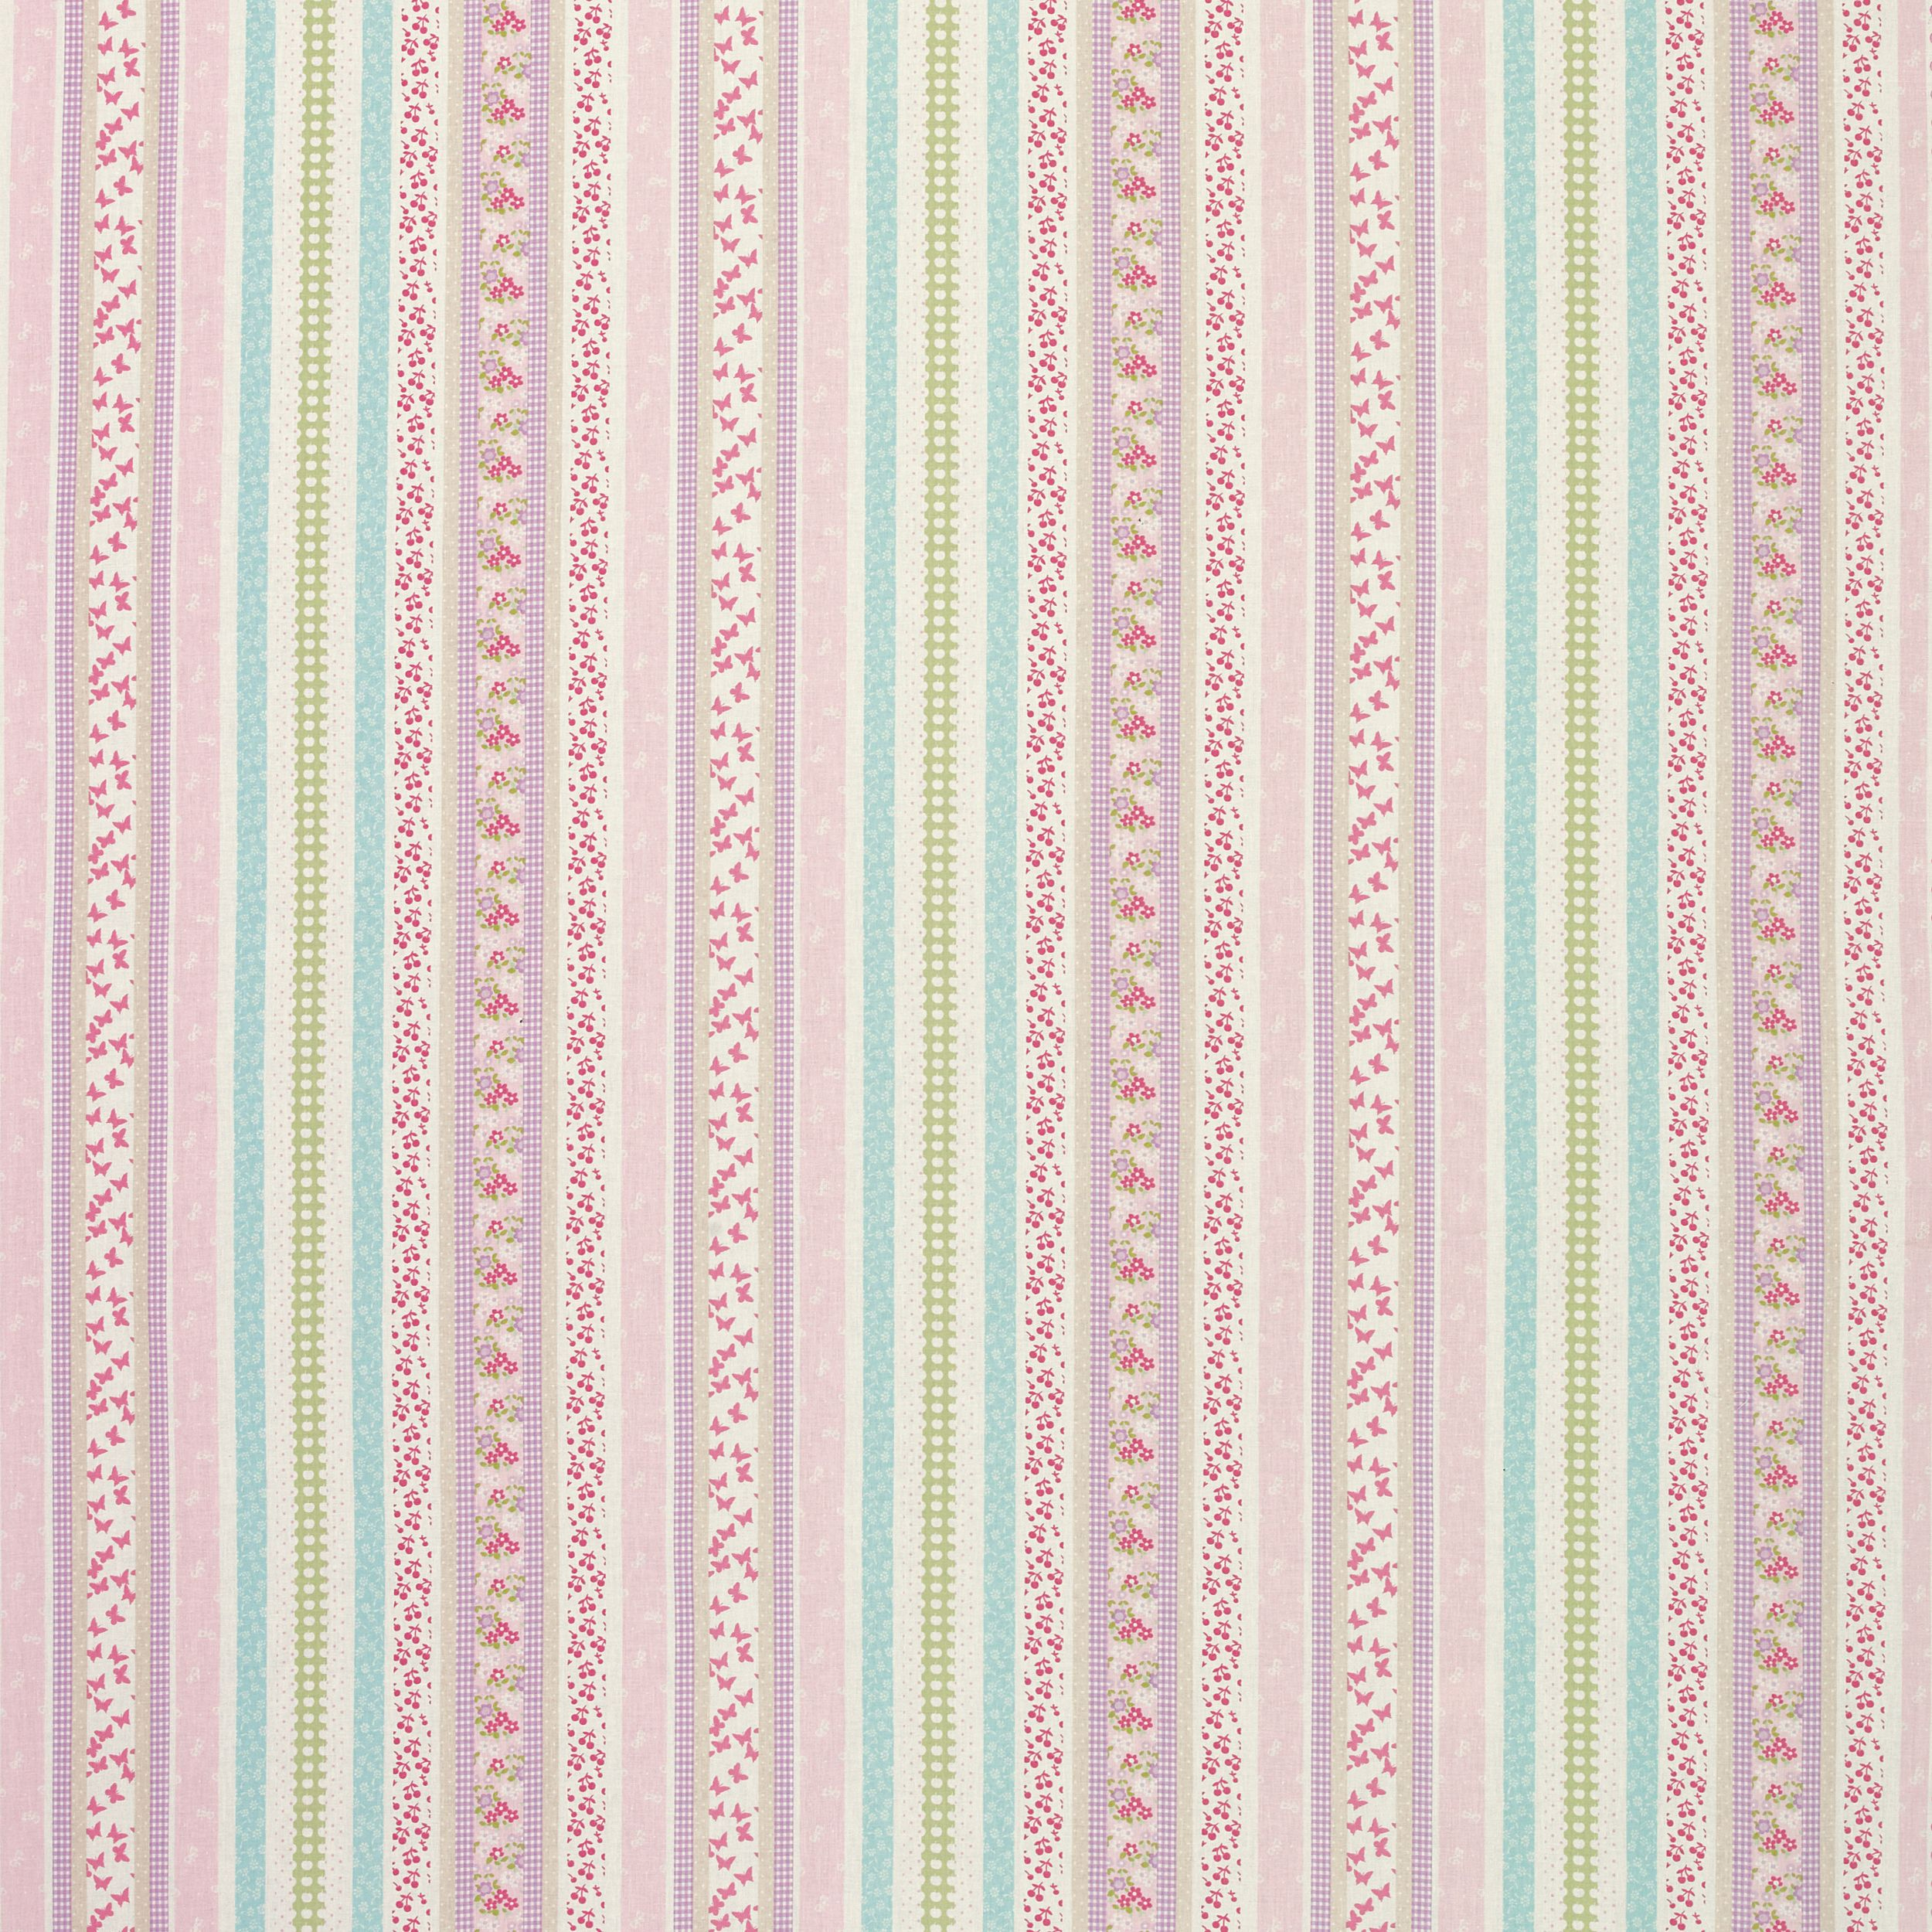 Lilac Bedroom Curtains Pink Teal Bright Olive Green Fuschia Lilac Off White Pale